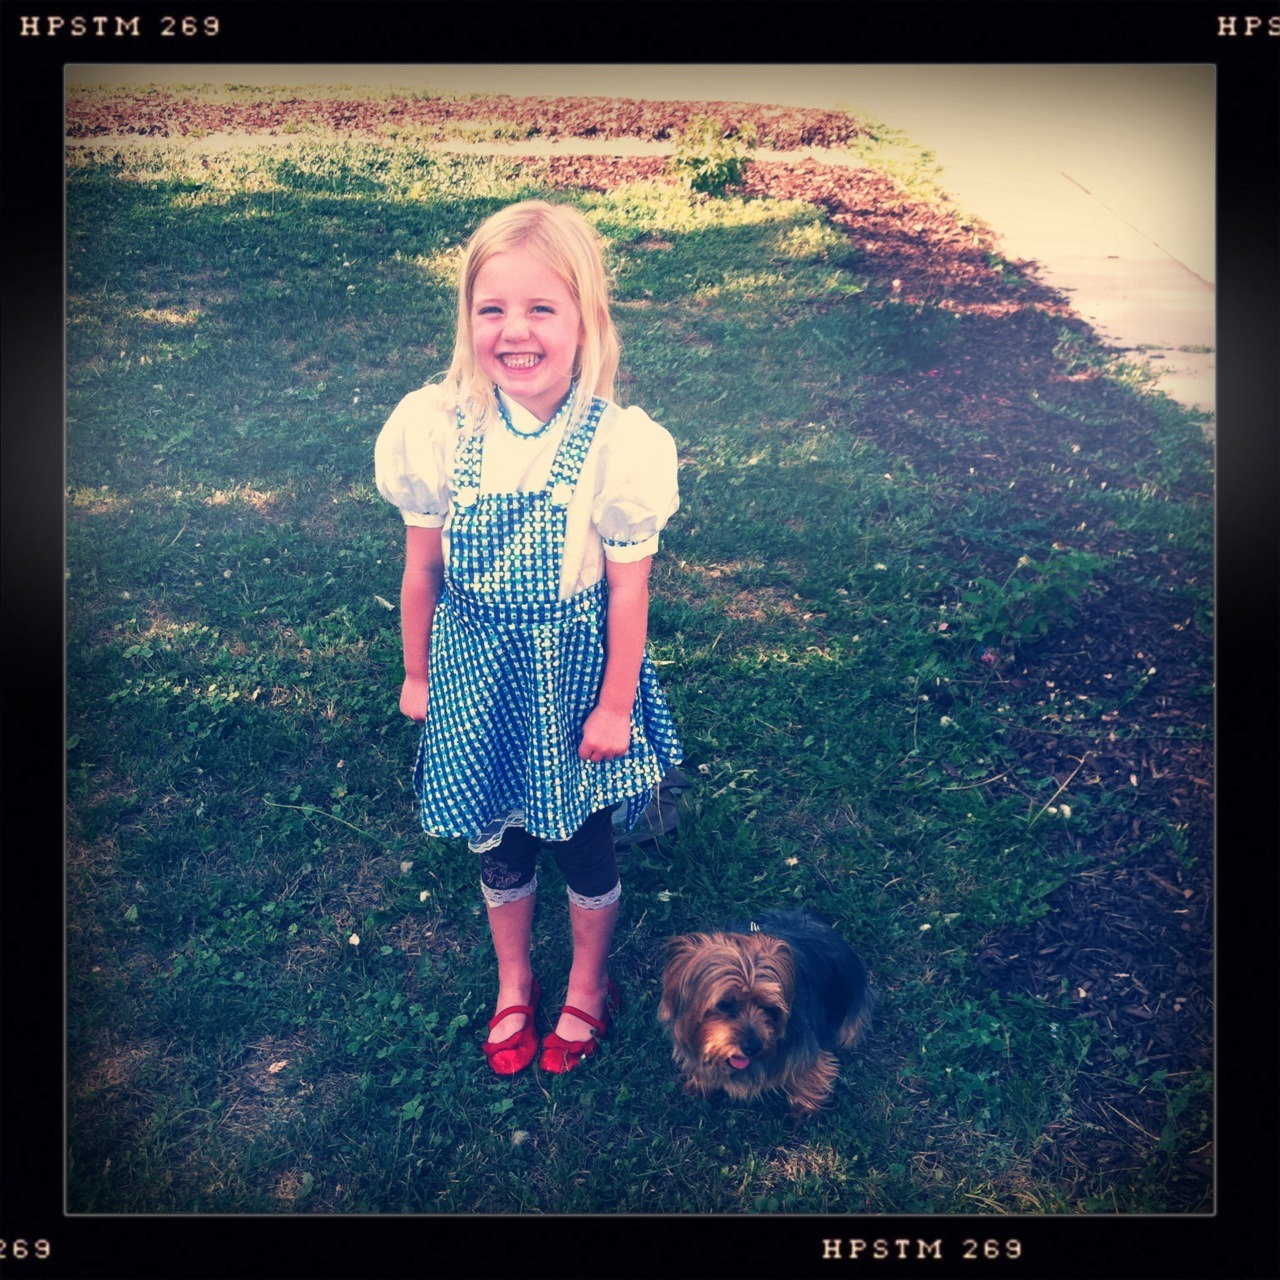 Dorothy, and Toto Too Taken with Hipstamatic, Tejas Lens, Pistil Film, No Flash.